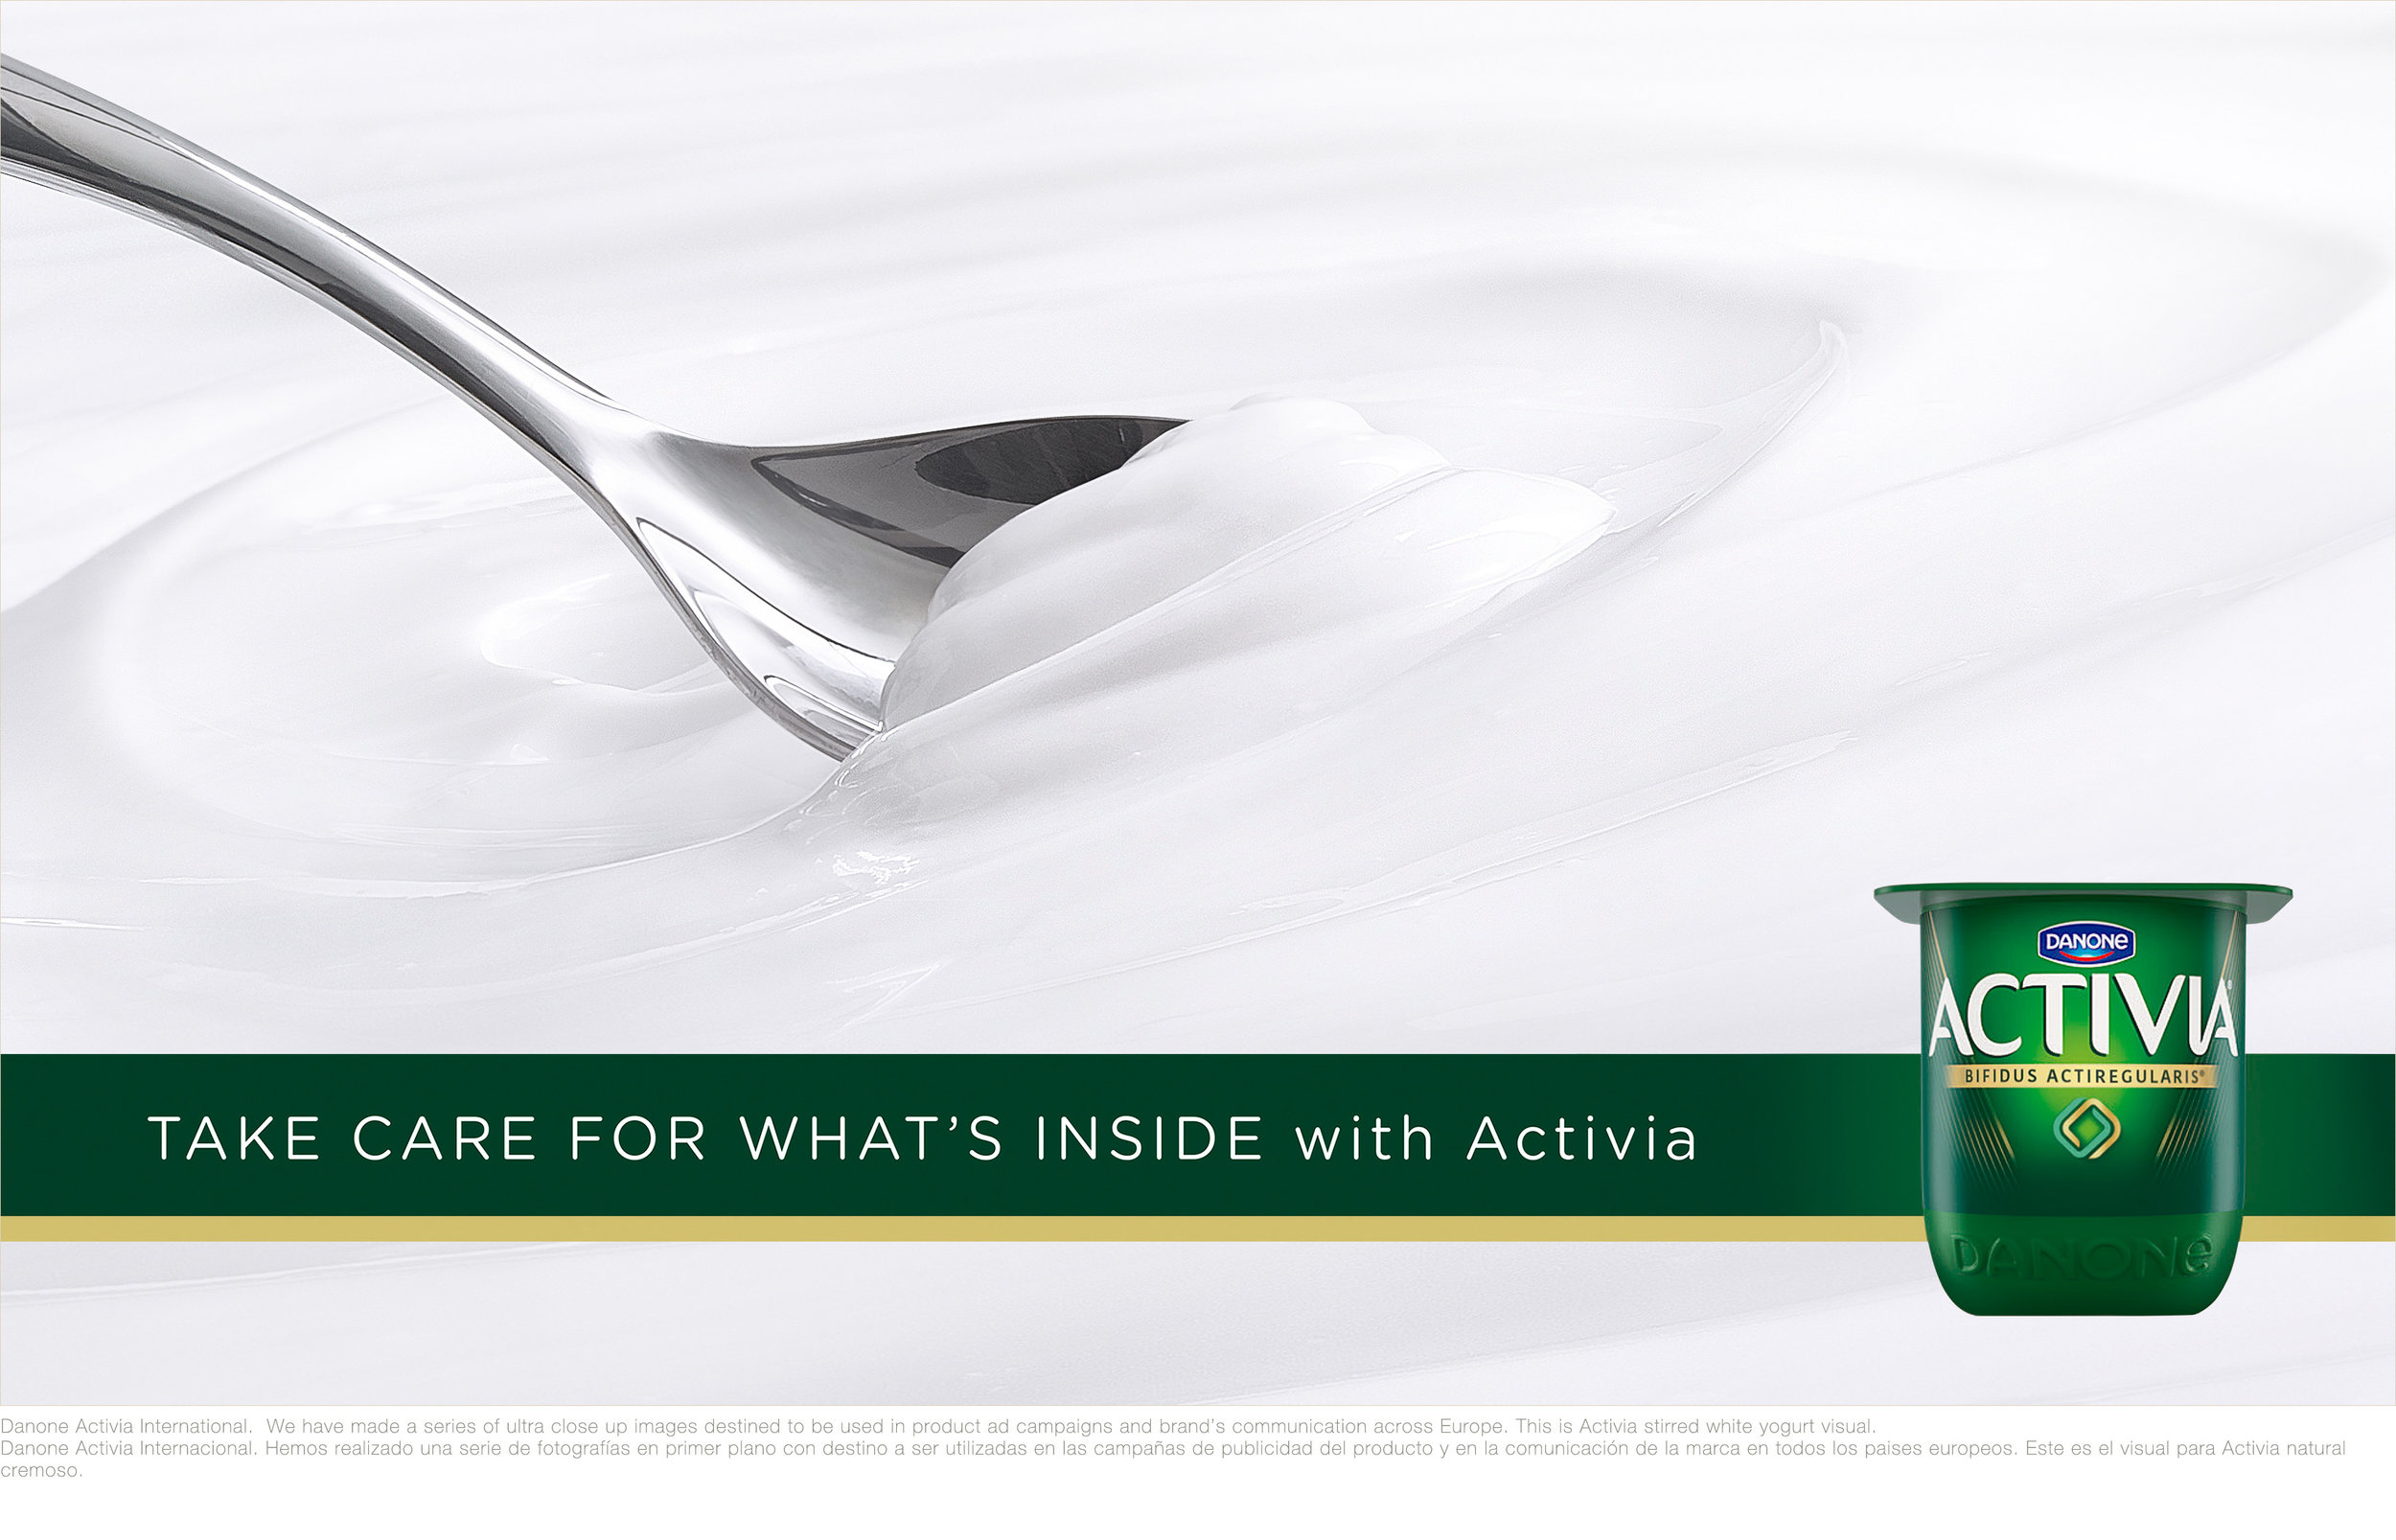 1723a-Activia-INT-Stirred-White-OK-02.jpg